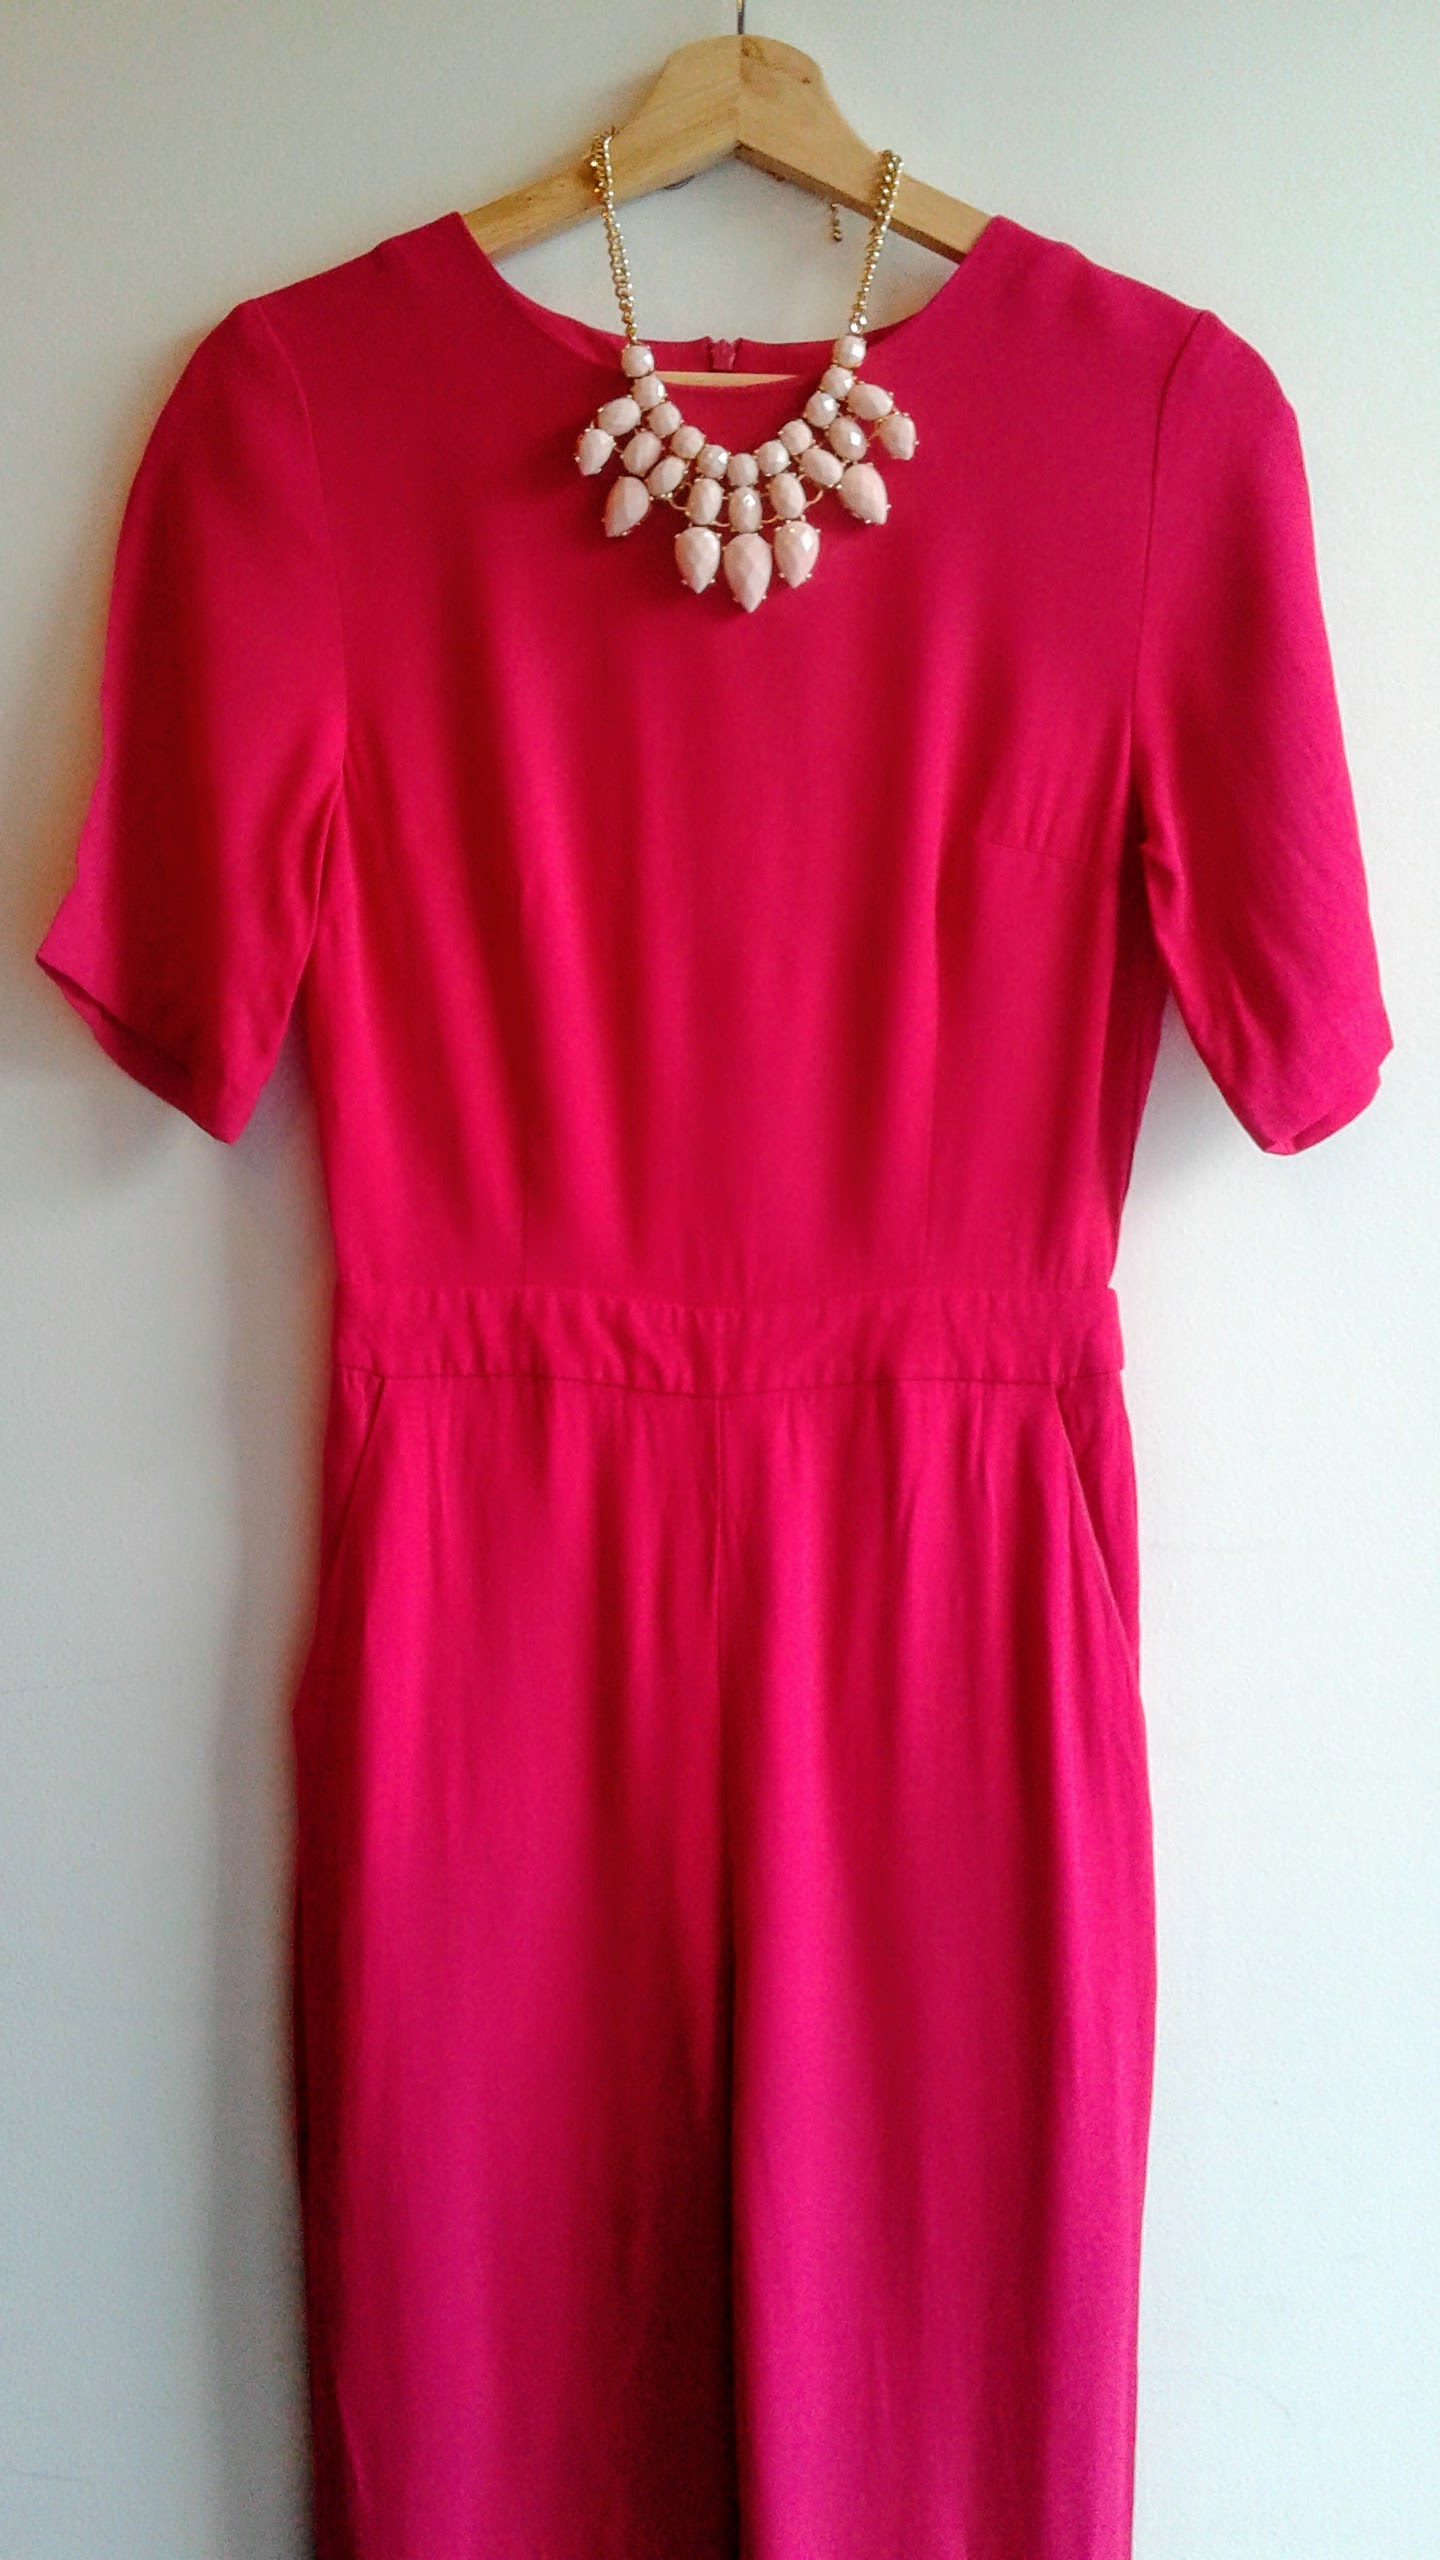 Topshop jumpsuit; Size S, $46. Necklace, $28